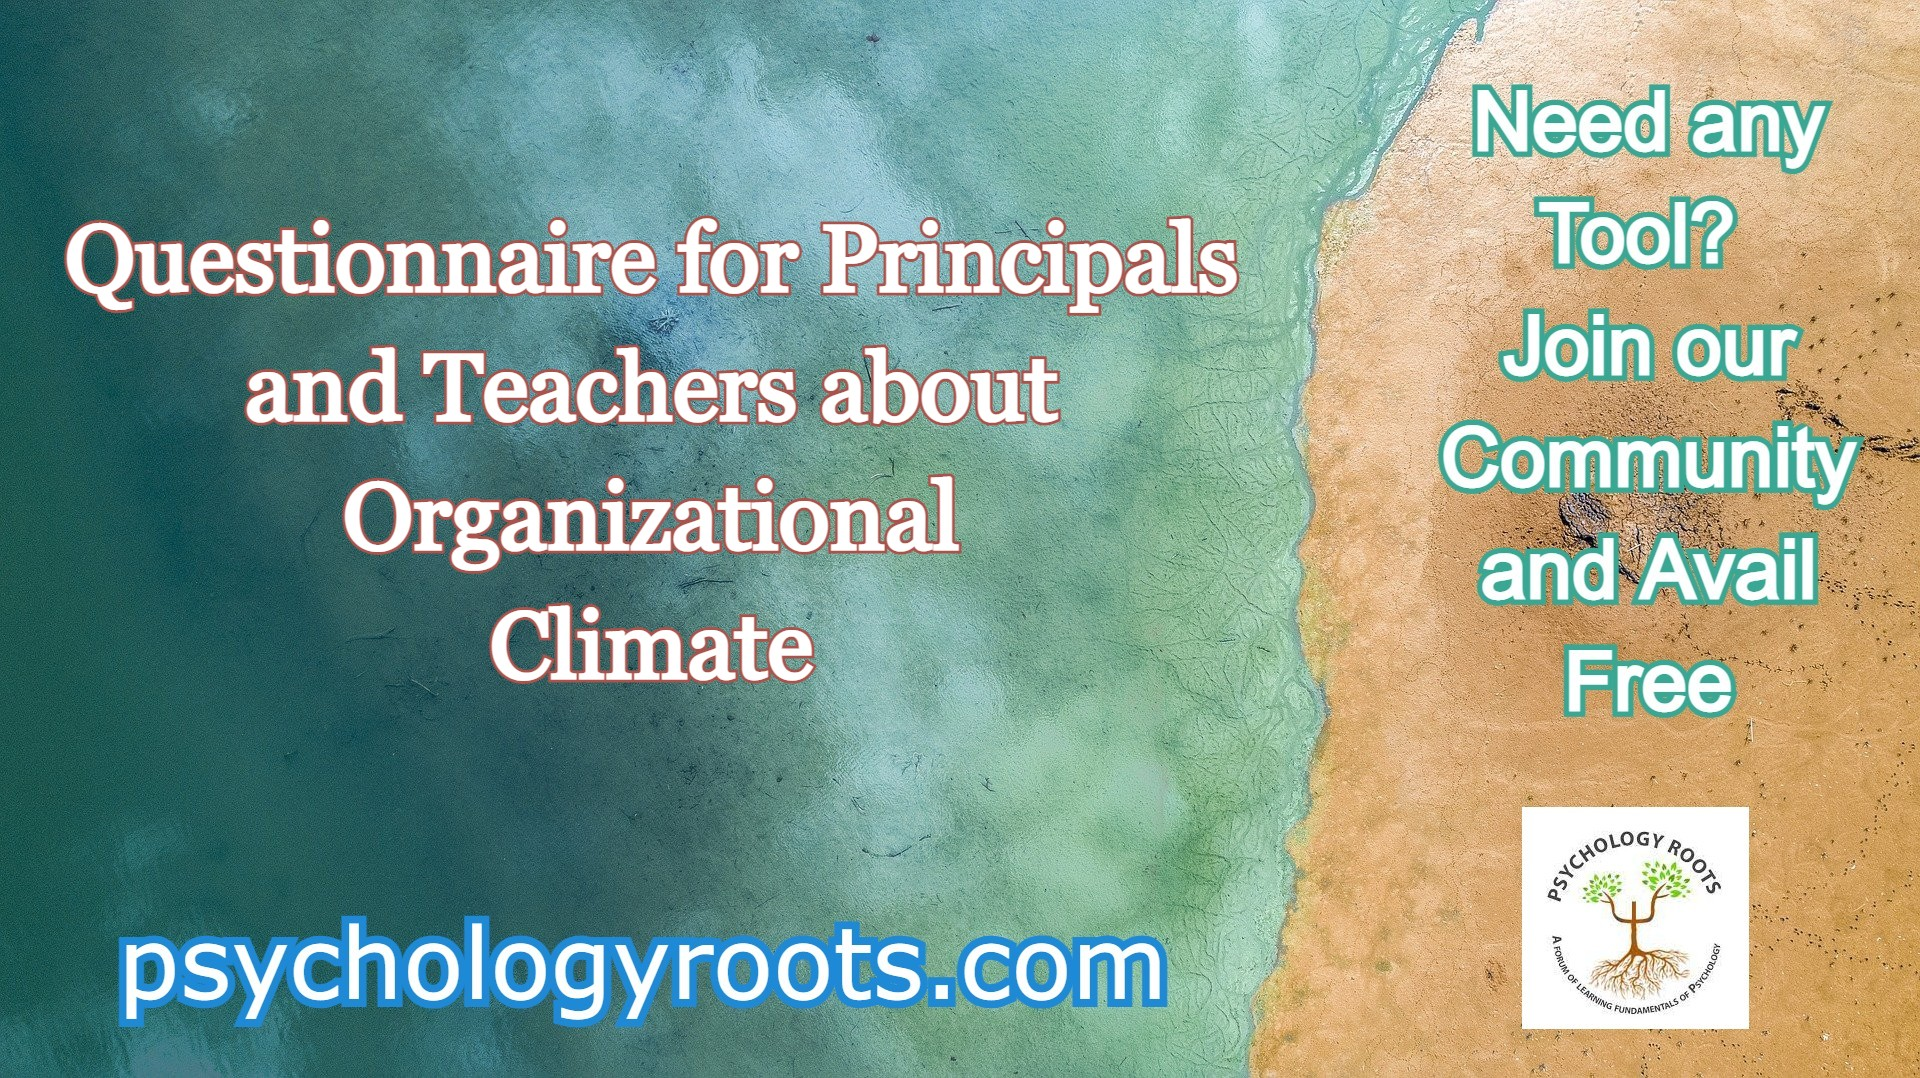 Questionnaire for Principals and Teachers about Organizational Climate